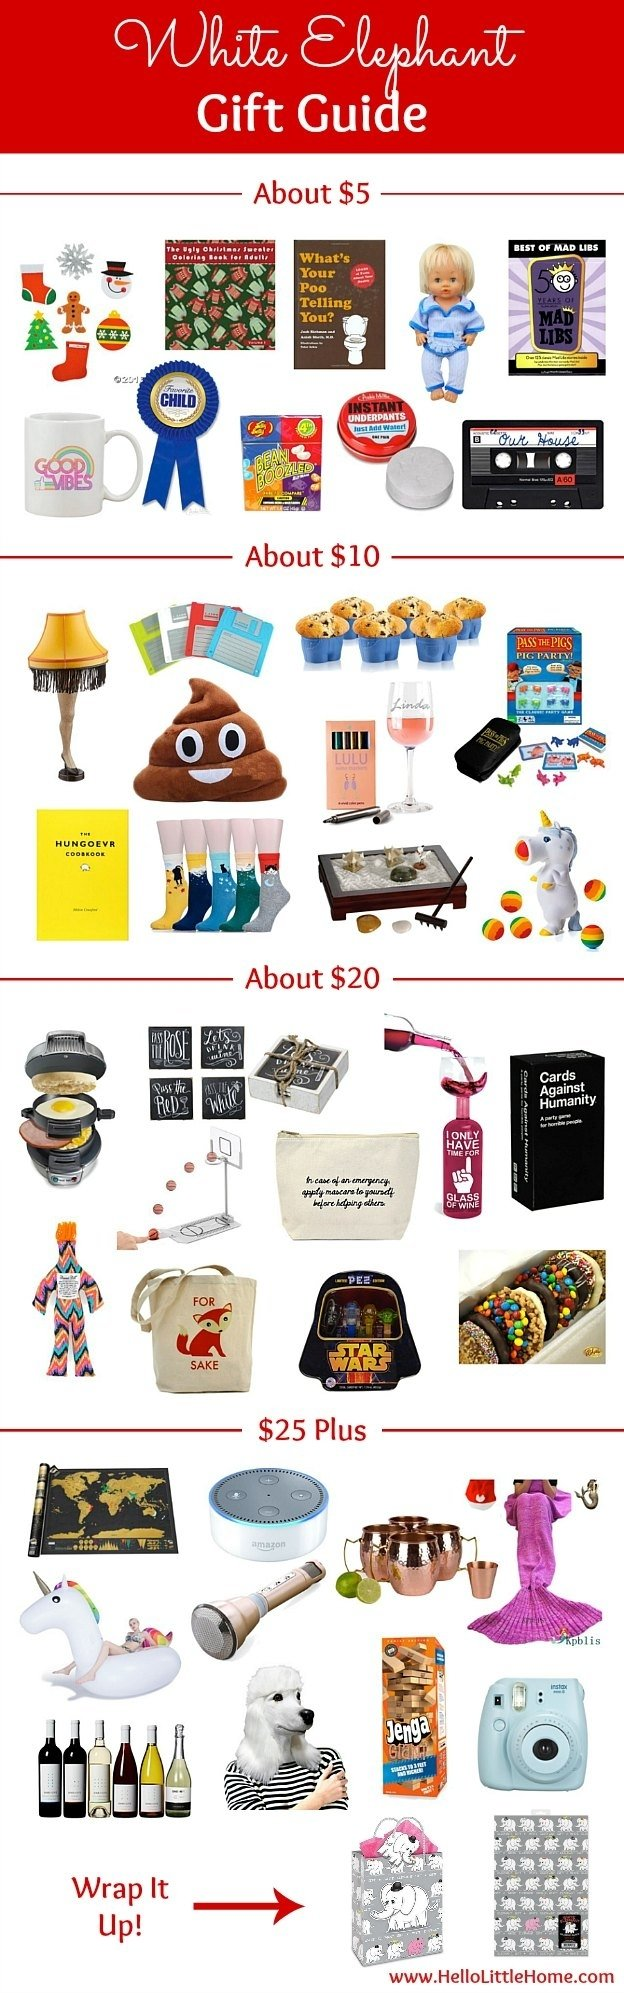 10 Nice Creative White Elephant Gift Ideas white elephant gift guide 1 2020